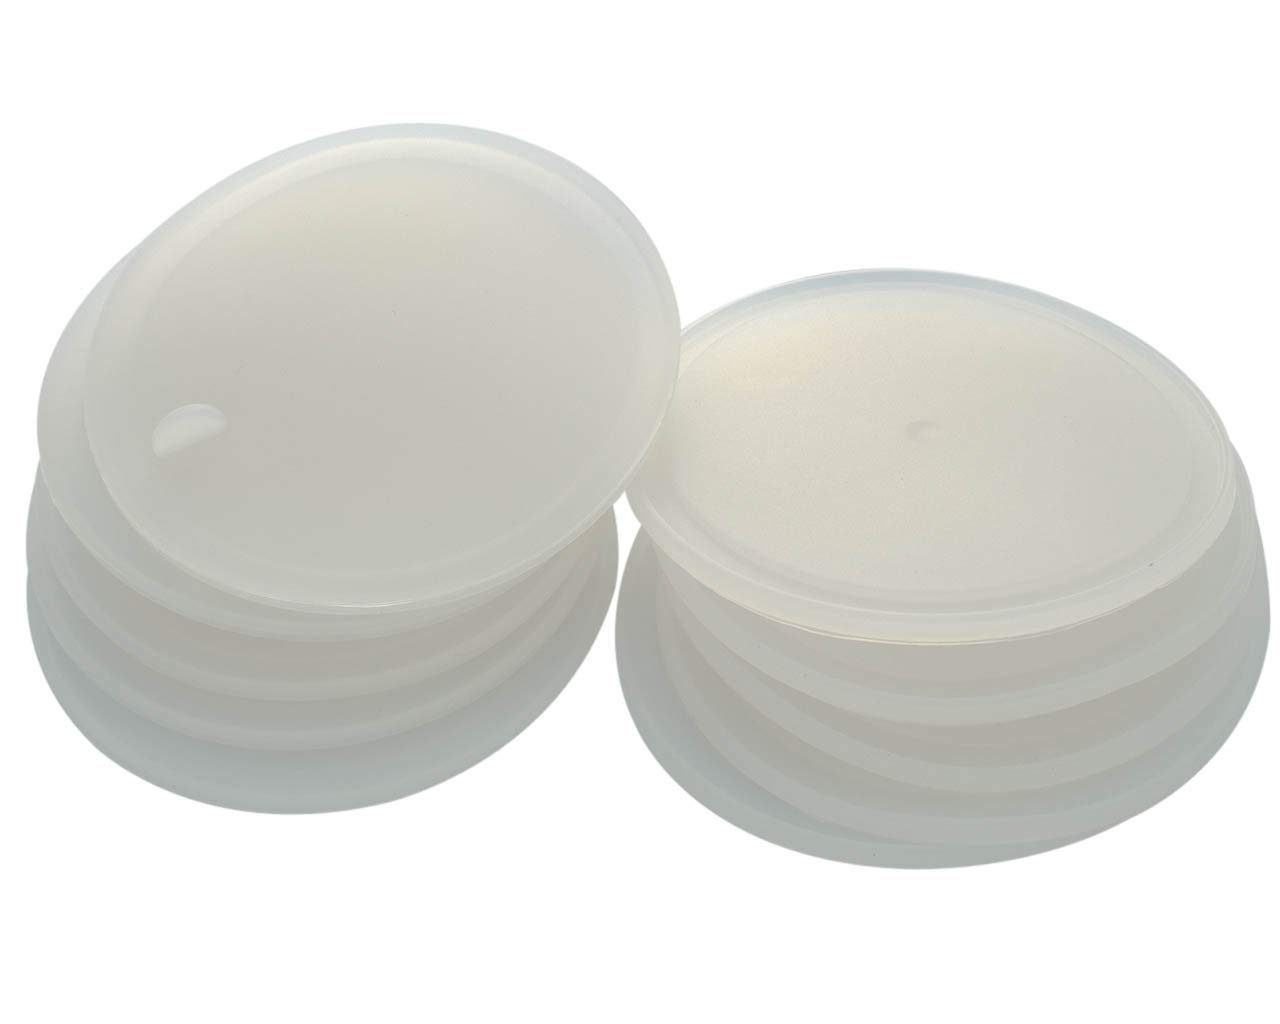 Leak Proof Platinum Silicone Sealing Lid Inserts/Liners for Mason Jars (10 Pack, Wide Mouth)